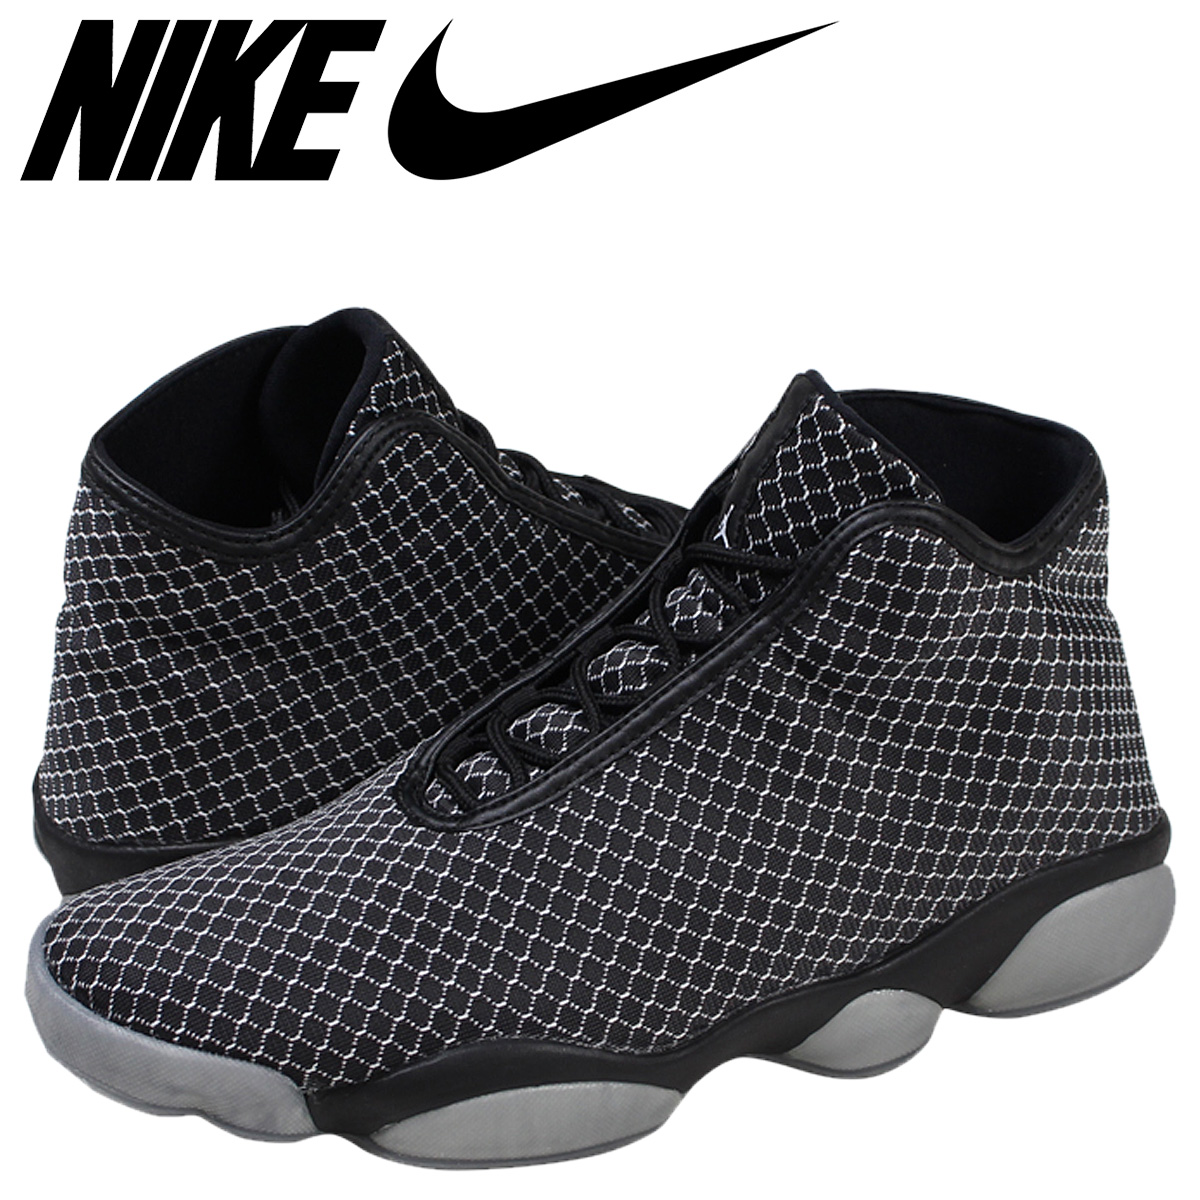 official photos 610d2 fbbe8 Nike NIKE Air Jordan sneakers AIR JORDAN HORIZON horizon 823,581-010 black  men